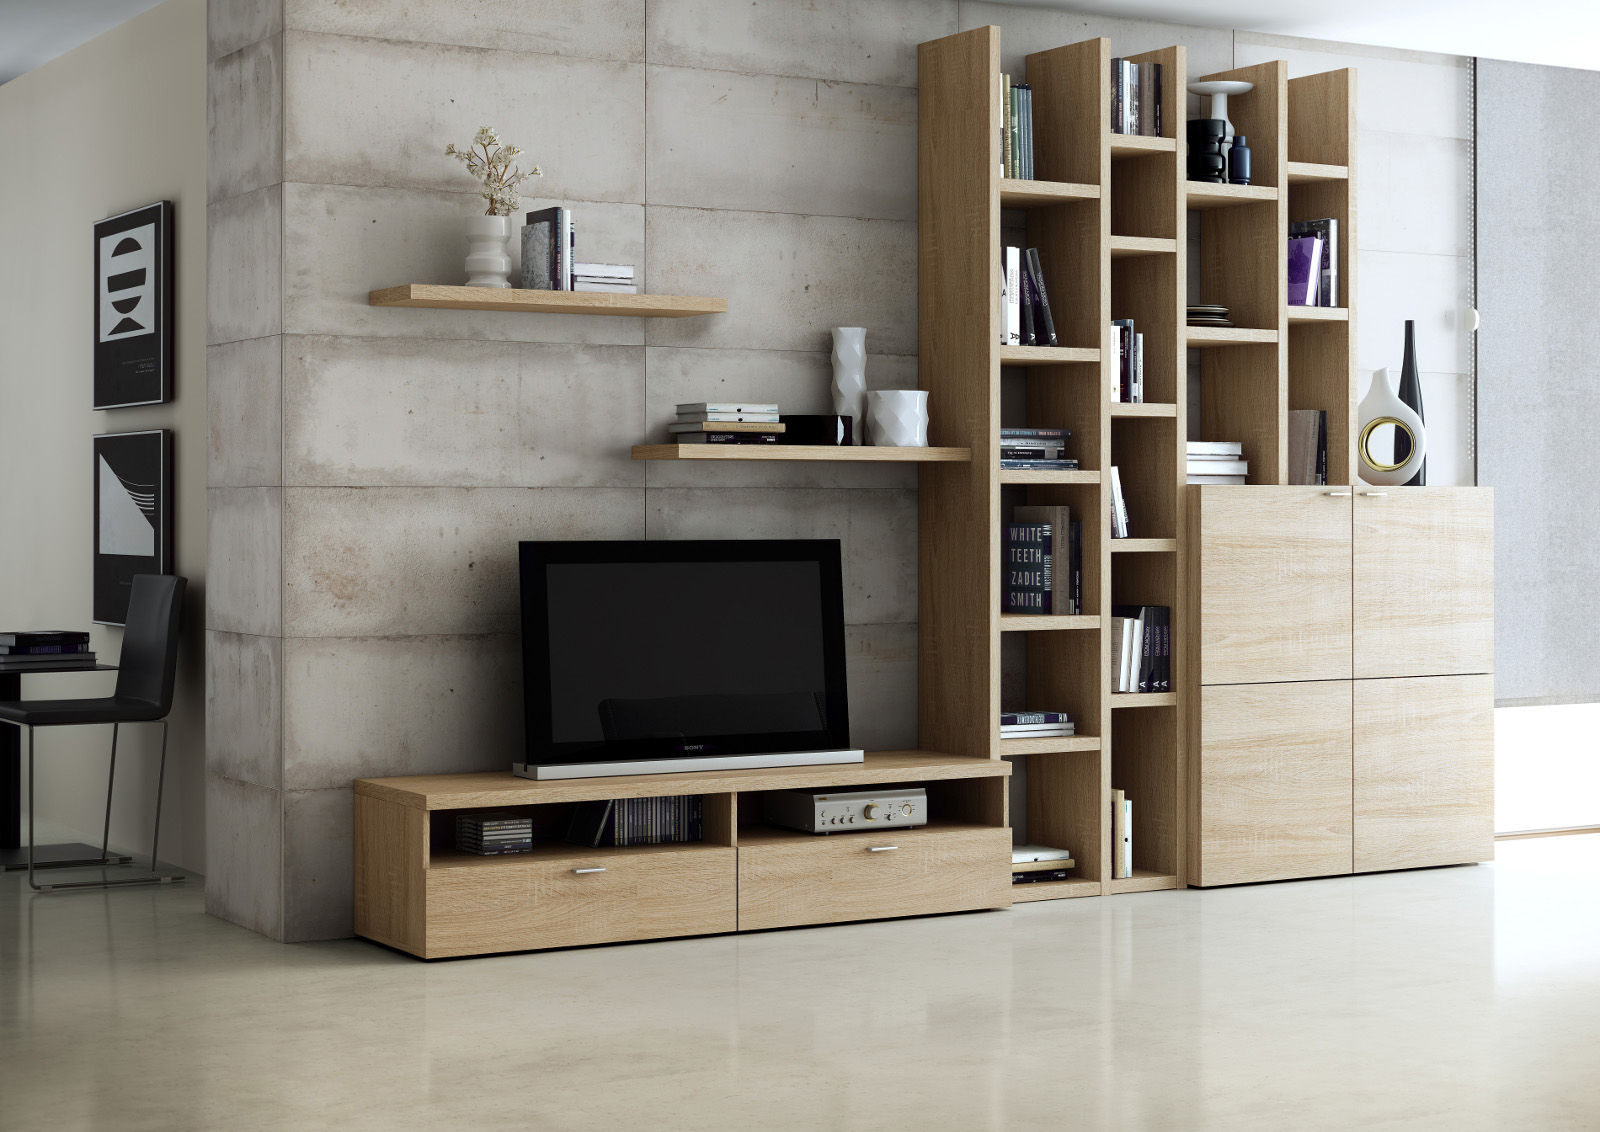 wohnwand b cherwand lack eiche natur tv fach. Black Bedroom Furniture Sets. Home Design Ideas